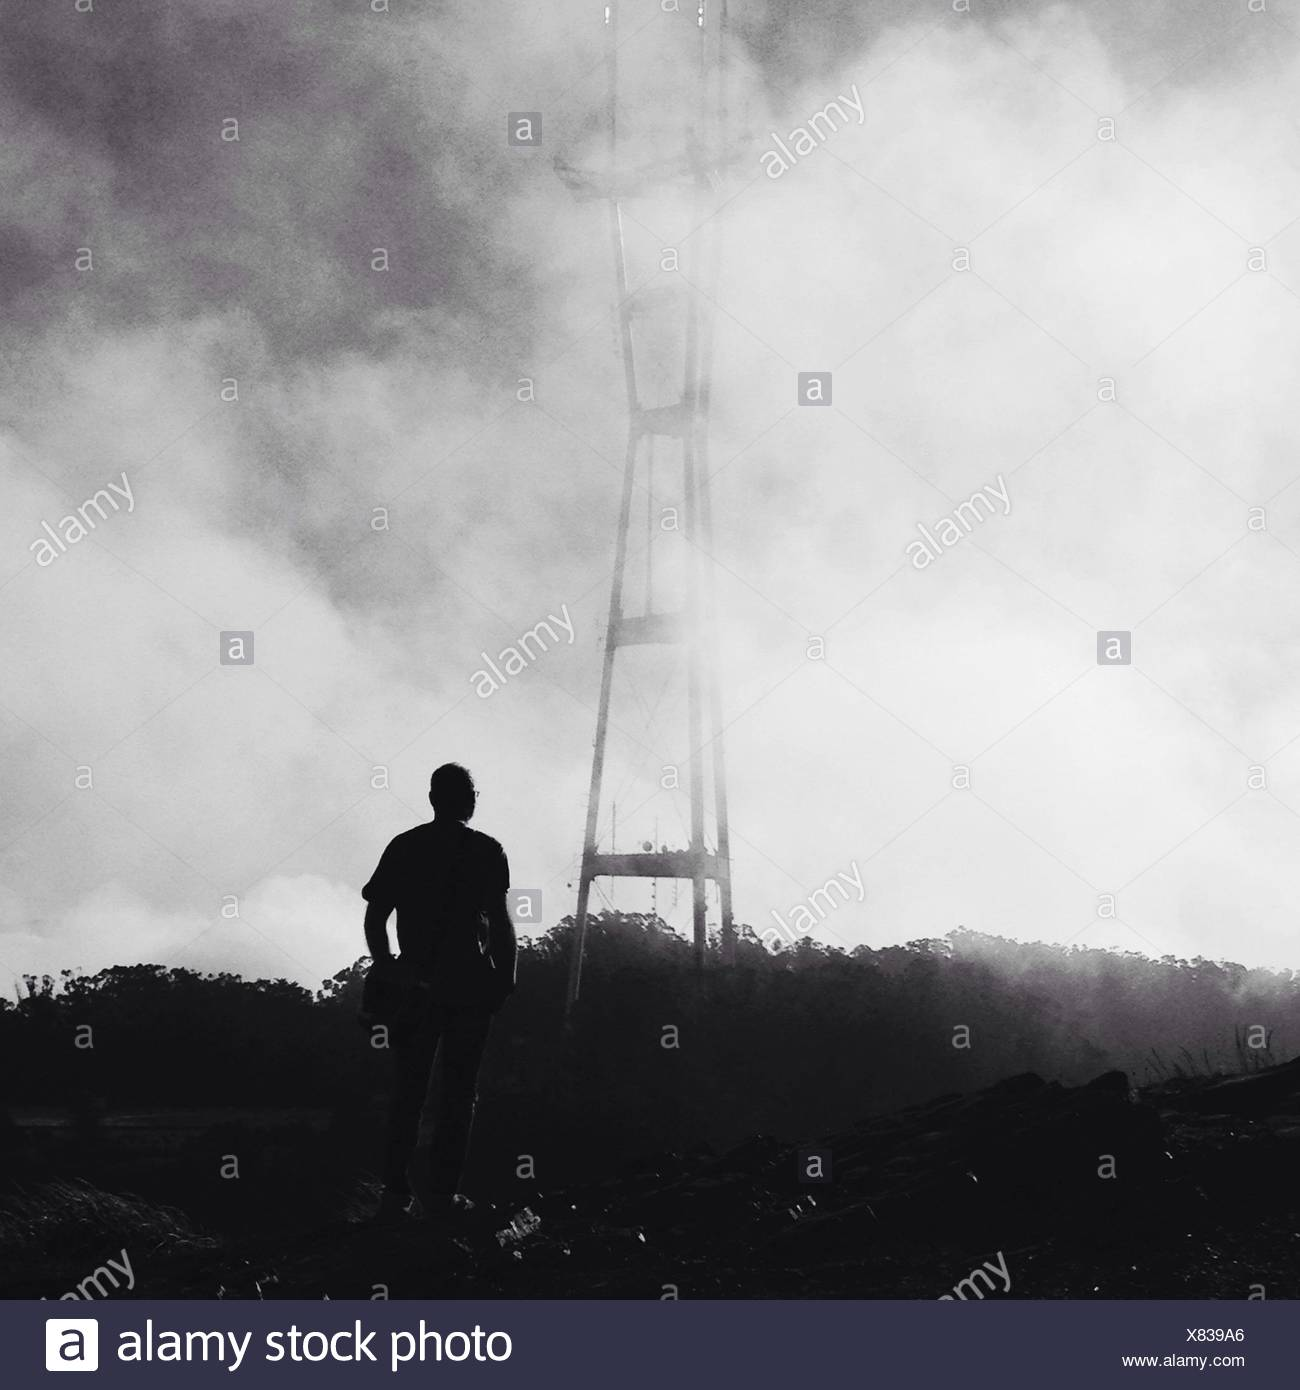 Man Standing Among Smoke - Stock Image